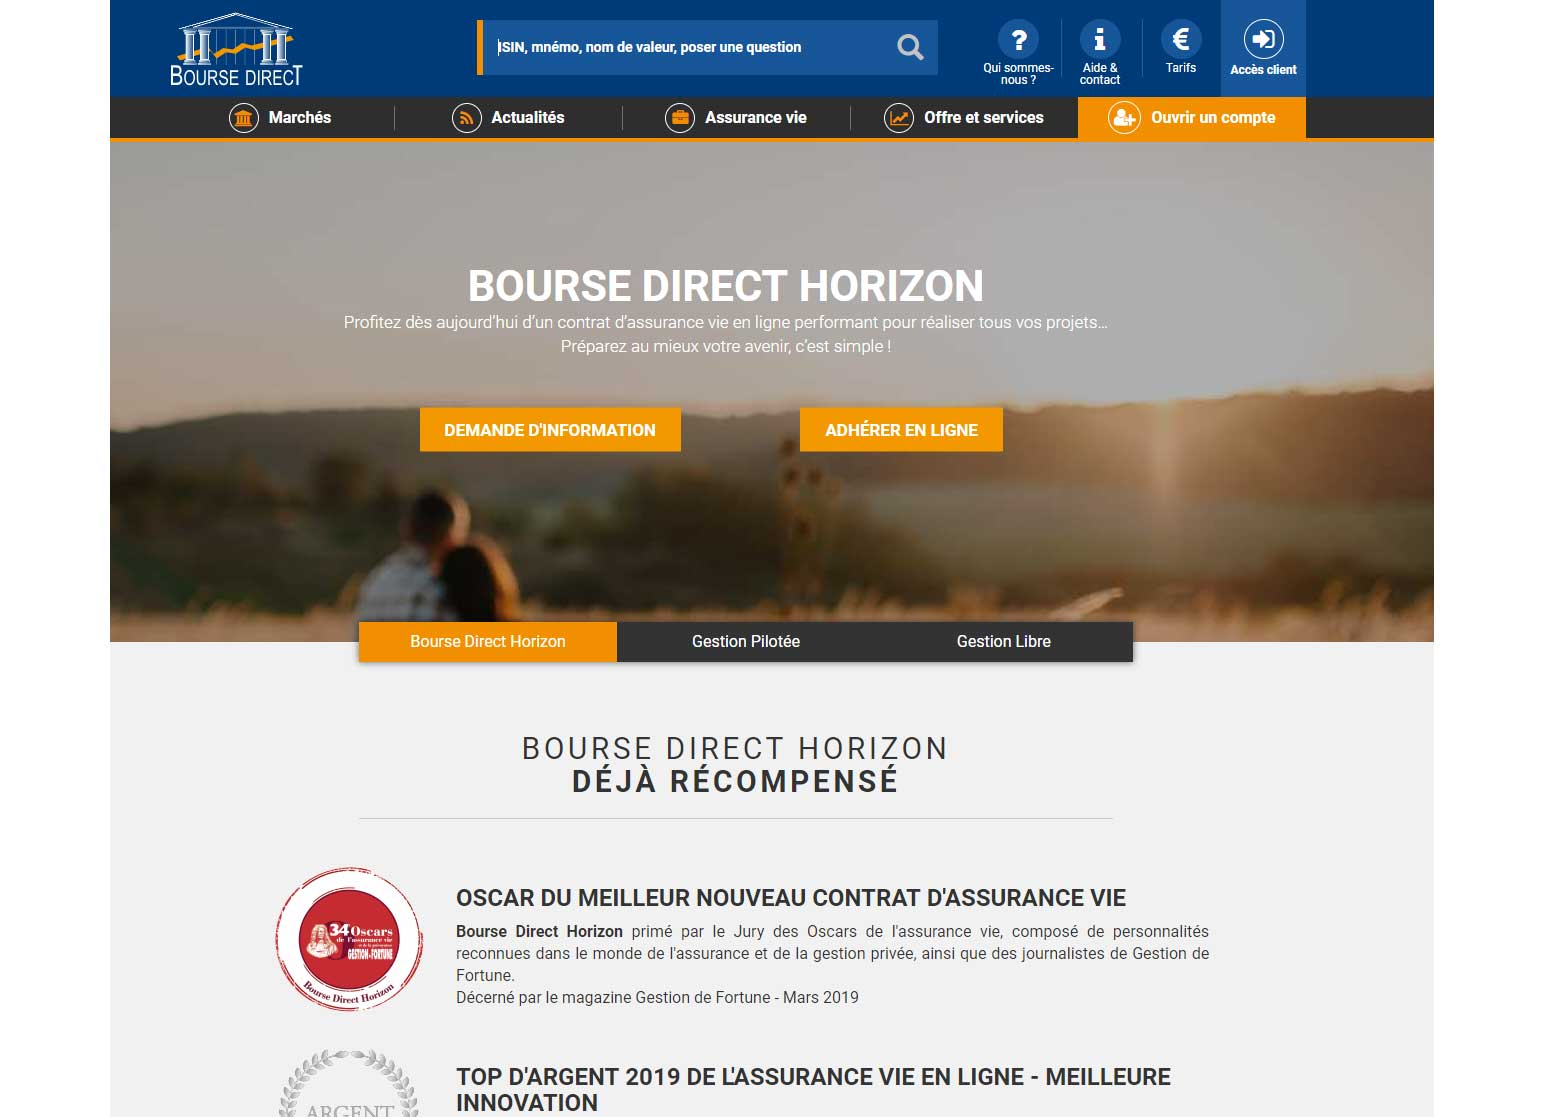 Bourse Direct Horizon